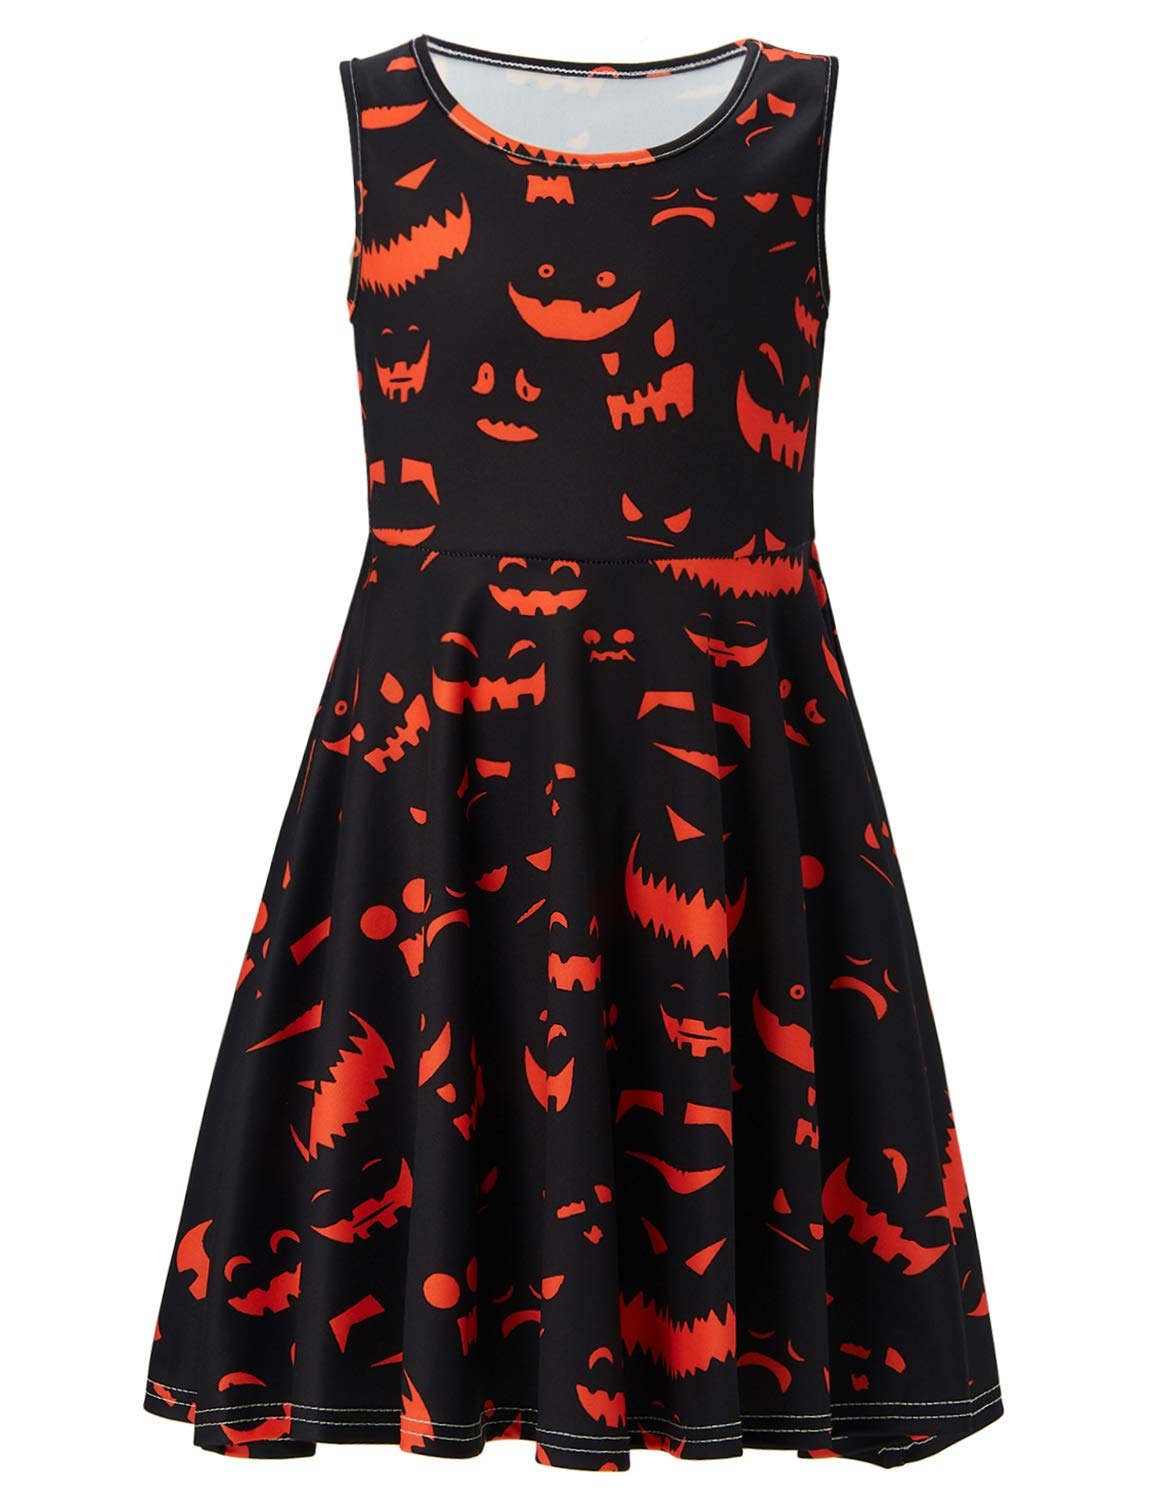 Idgreatim Girls Summer Printed Pumpkin Ghost Candy Sleeveless Round Neck Dress 4-5T